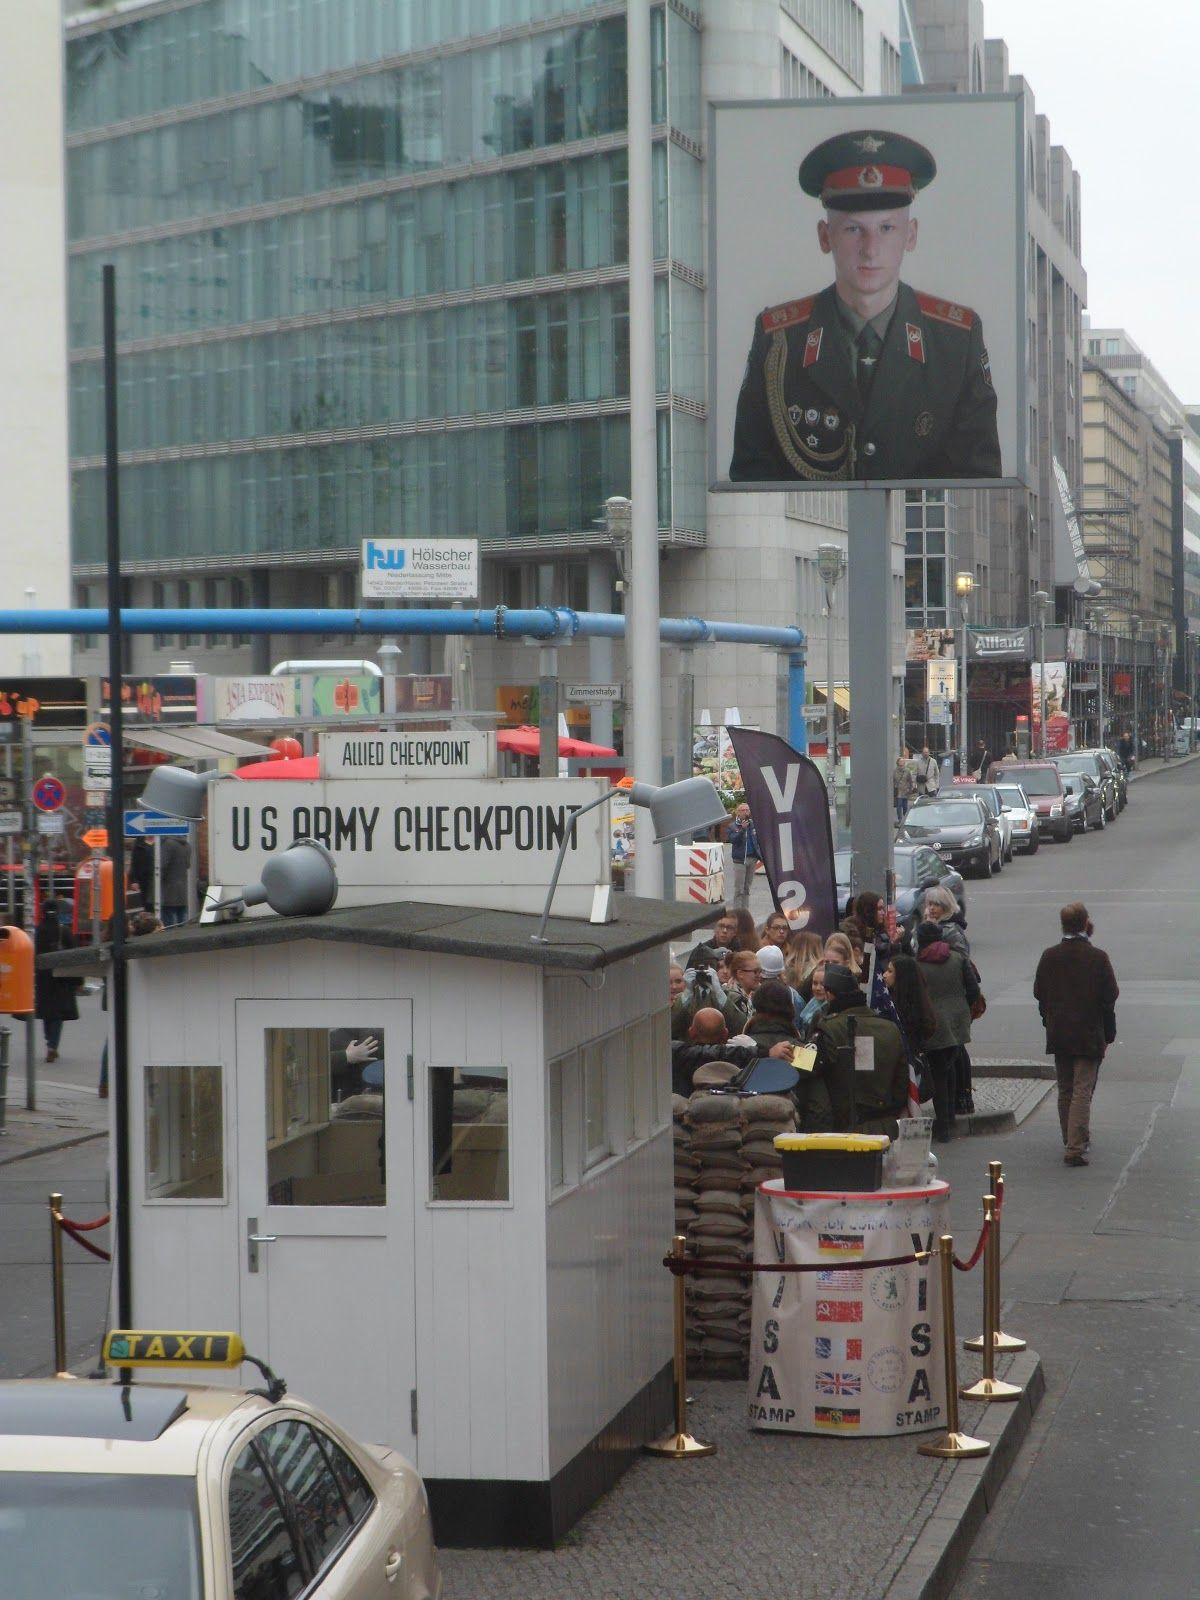 Fiatpxl Photos Images Pixels Berlin Checkpoint Charlie Checkpoint Charlie Germany Photo